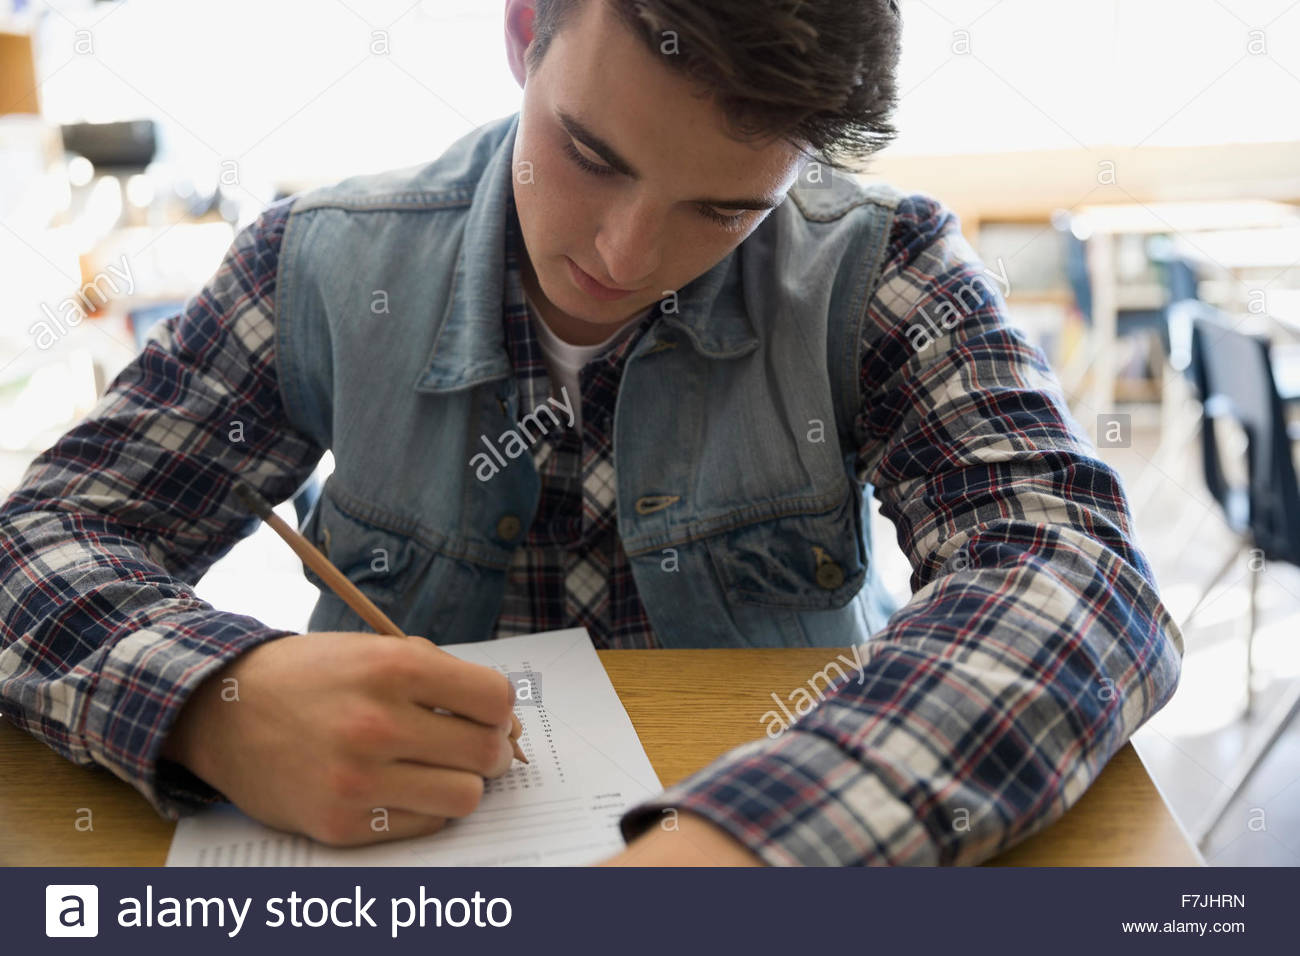 Focused high school student taking test - Stock Image